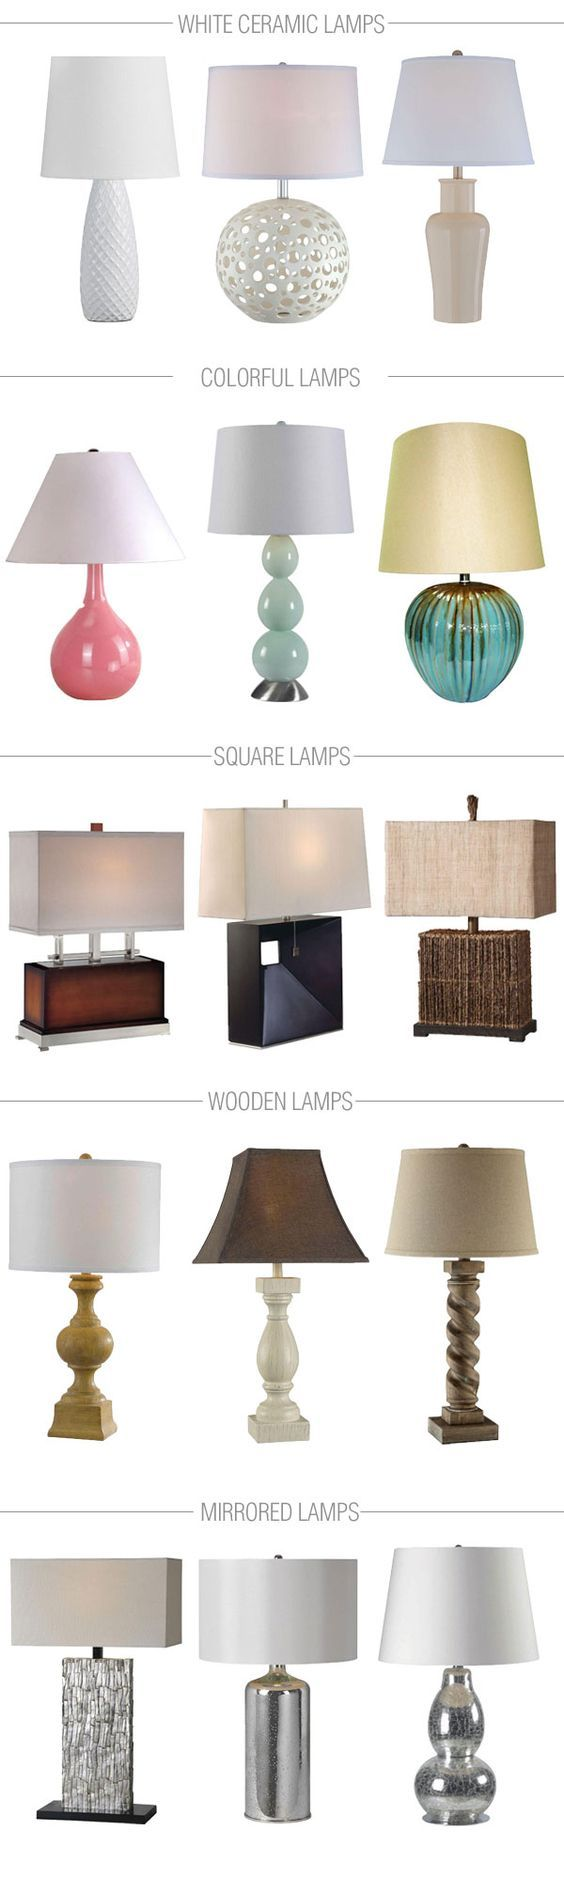 best 25 bedside table lamps ideas on pinterest bedroom lamps table lamps are so versatile and bring both function and drama to a room here